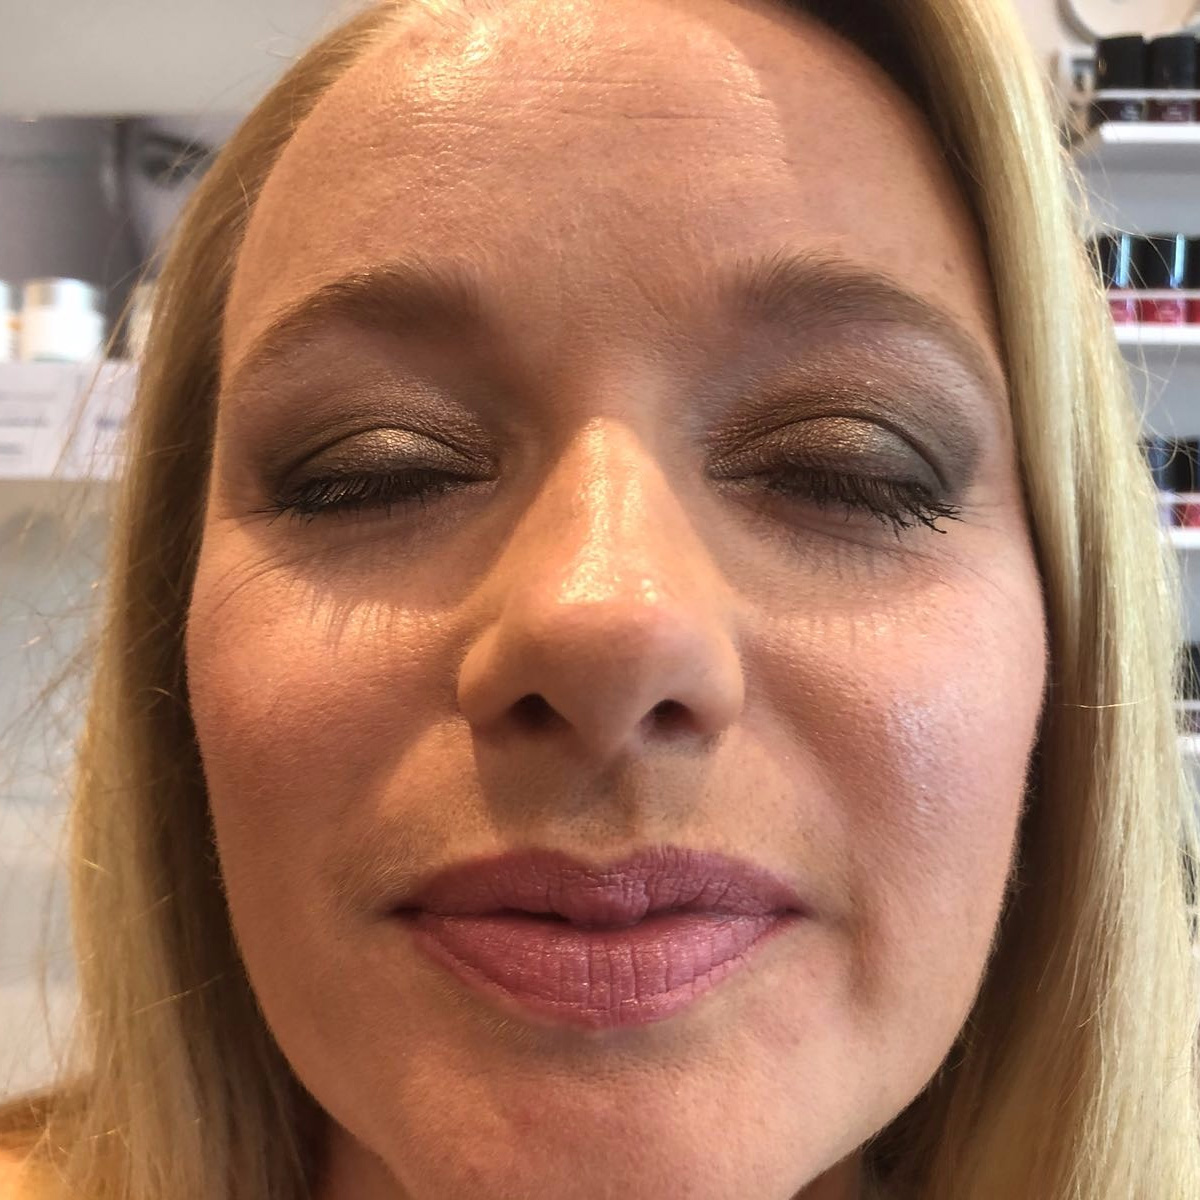 Essenziale Beauty Salon - Gallery - Face Treatments - Make up 9